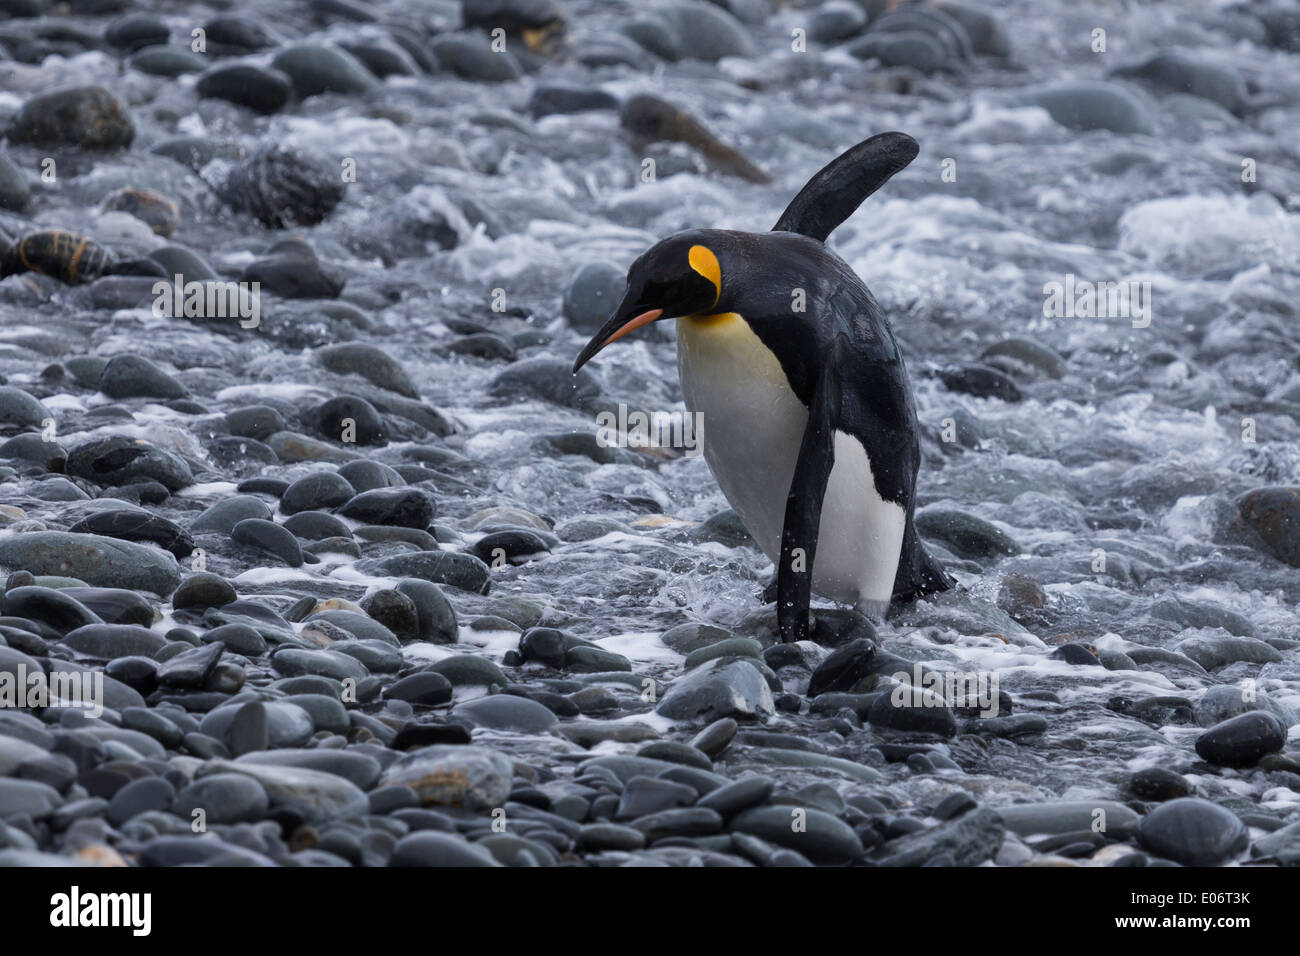 Out of Comfort zone - Penguin on Pebble Stock Photo